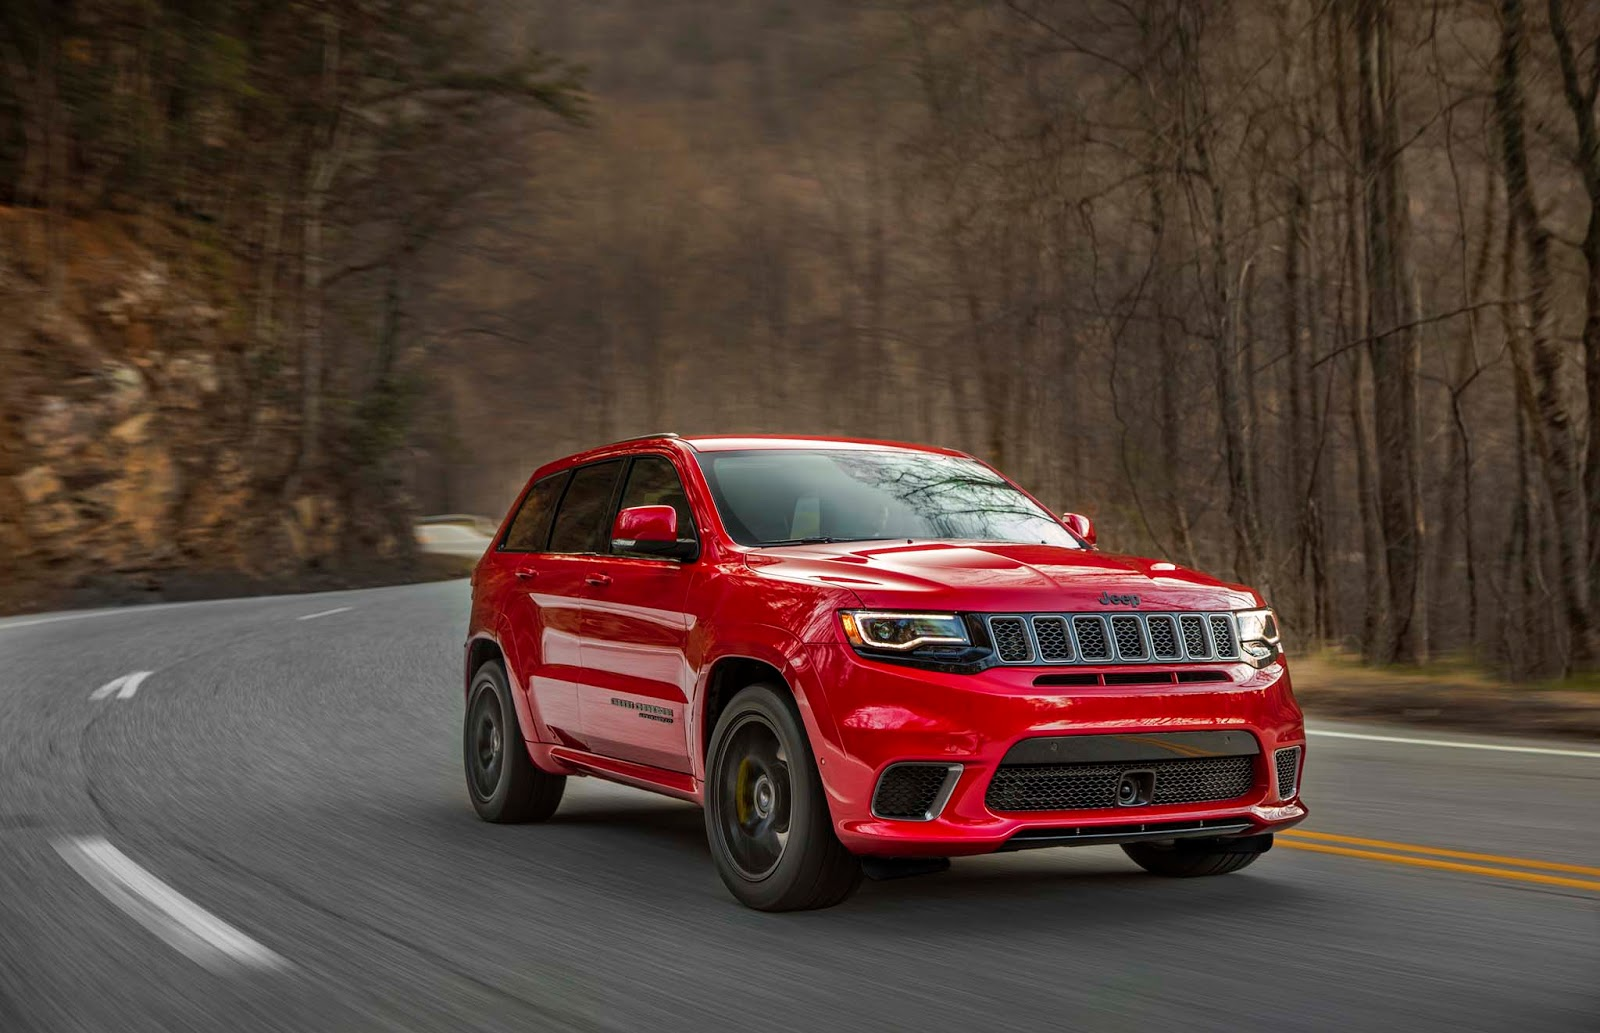 jeep s most expensive model yet is the 2018 grand cherokee trackhawk autoevolution. Black Bedroom Furniture Sets. Home Design Ideas